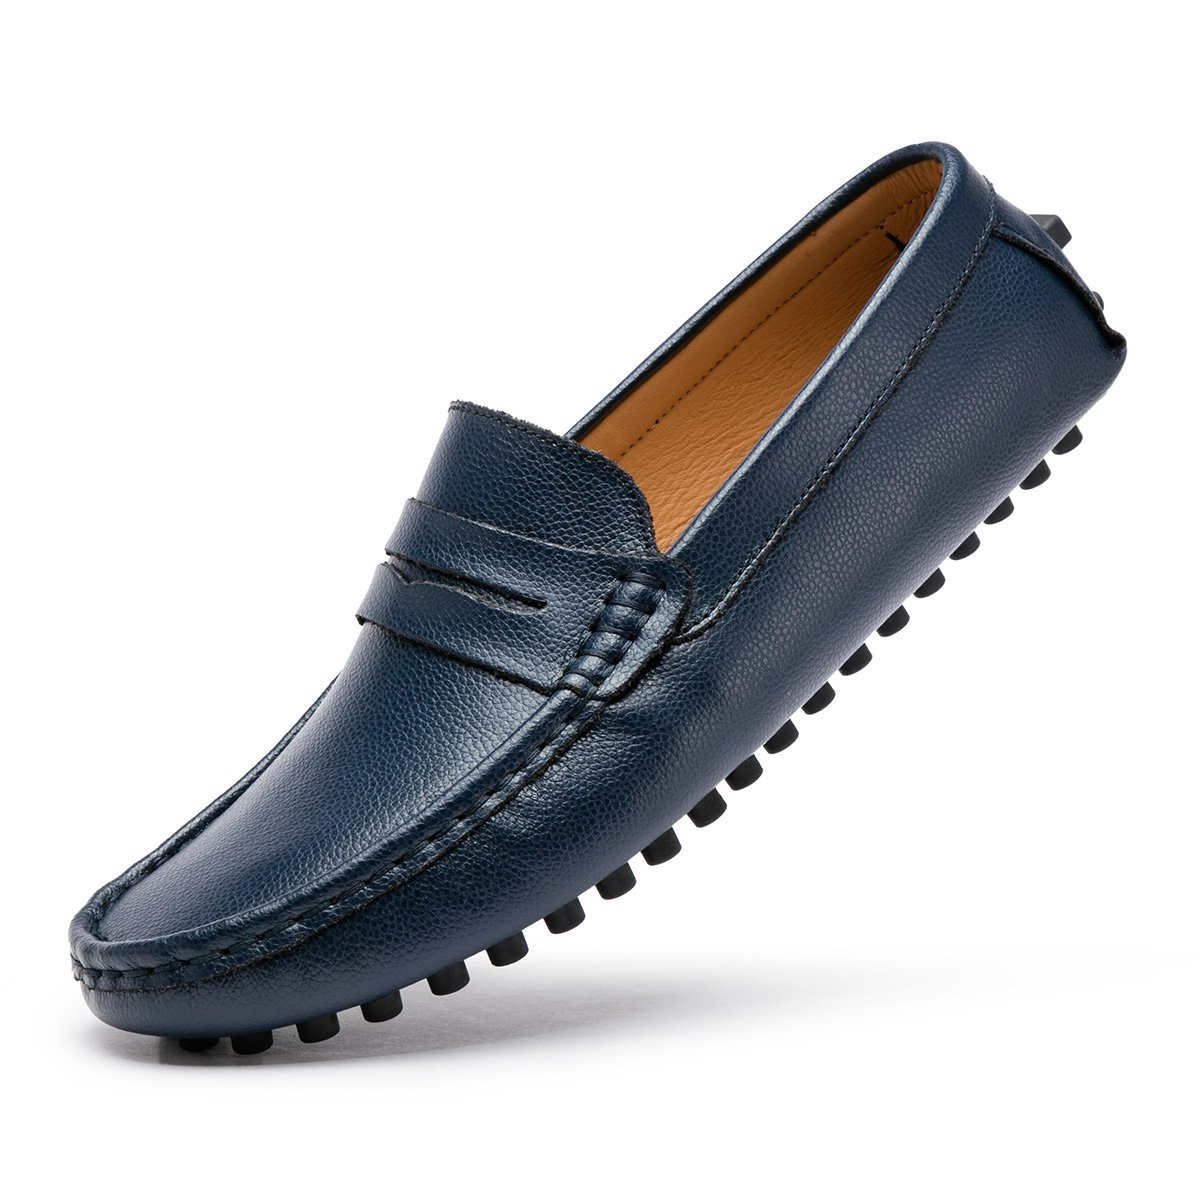 ARTISURE Men's Classic Handsewn Genuine Leather Penny Loafers Driving Moccasins Casual Slip On Boat Shoes Fashion Comfort Flats Blue 12 M US SKS-1223LAN120